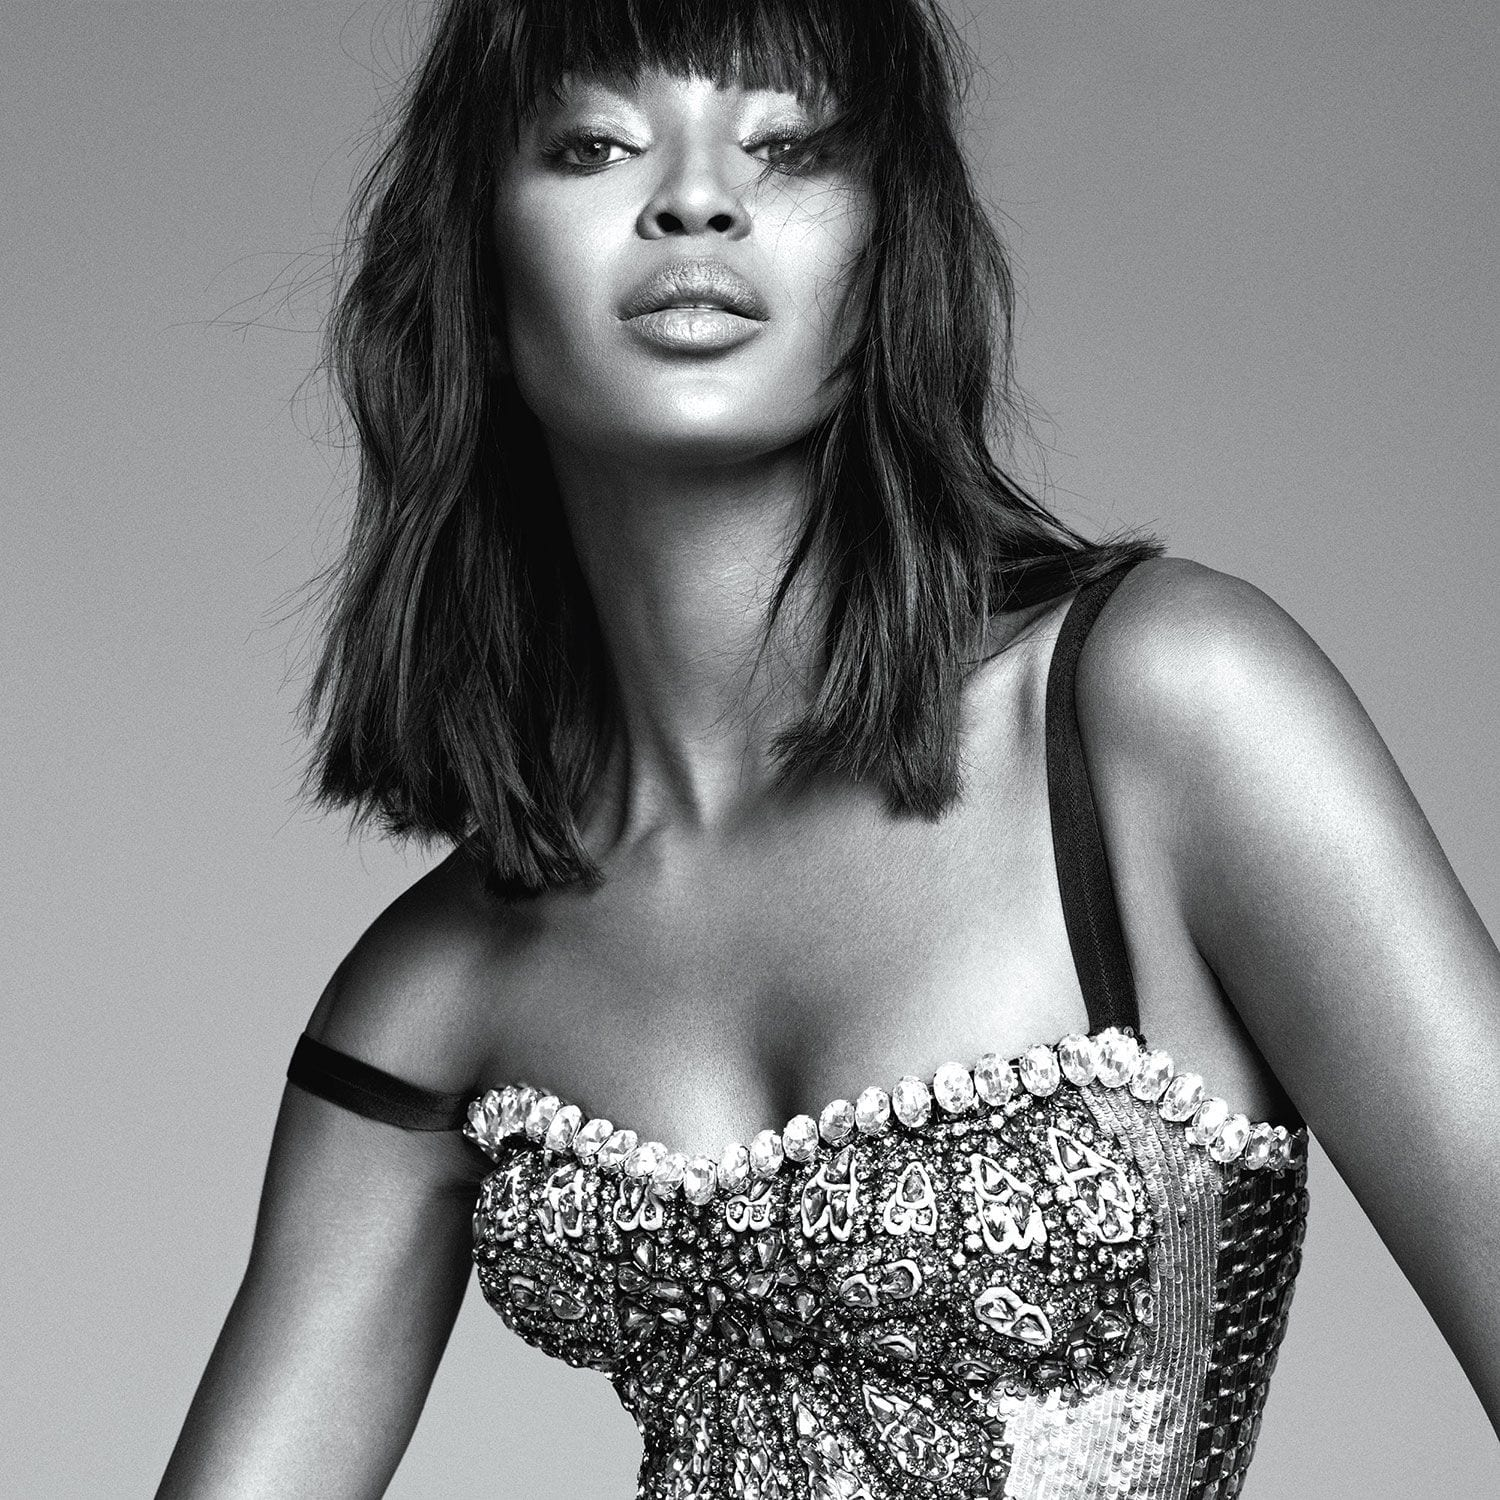 Who Is Naomi Campbell? Know About The Model's Recent News That Shook The Social Media